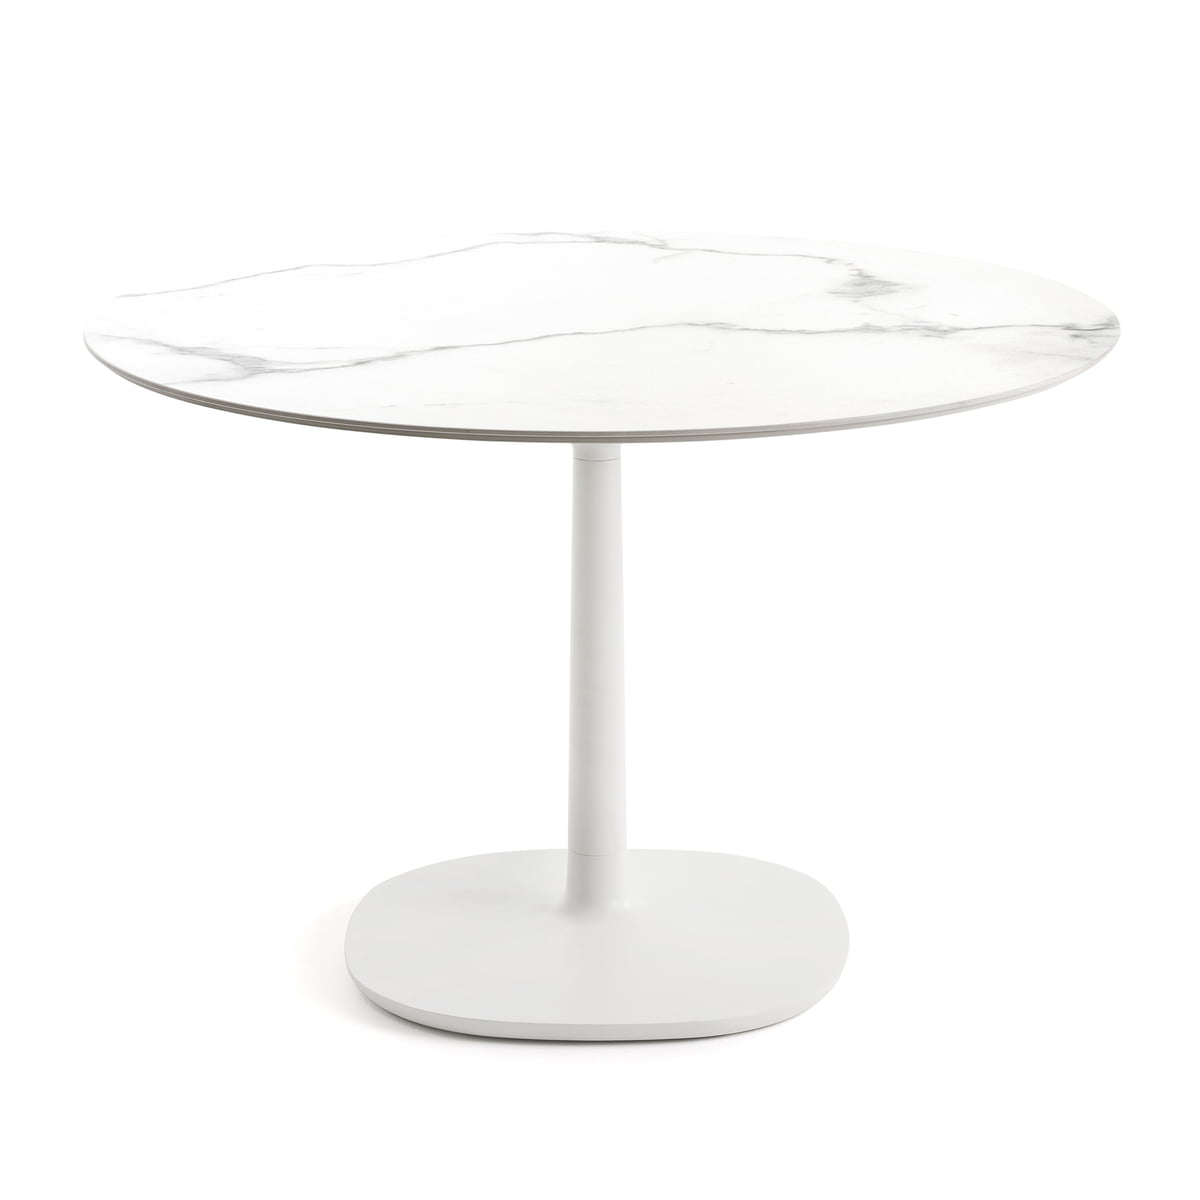 Beau Round Multiplo Bistro Table Ø 118 Cm By Kartell In White